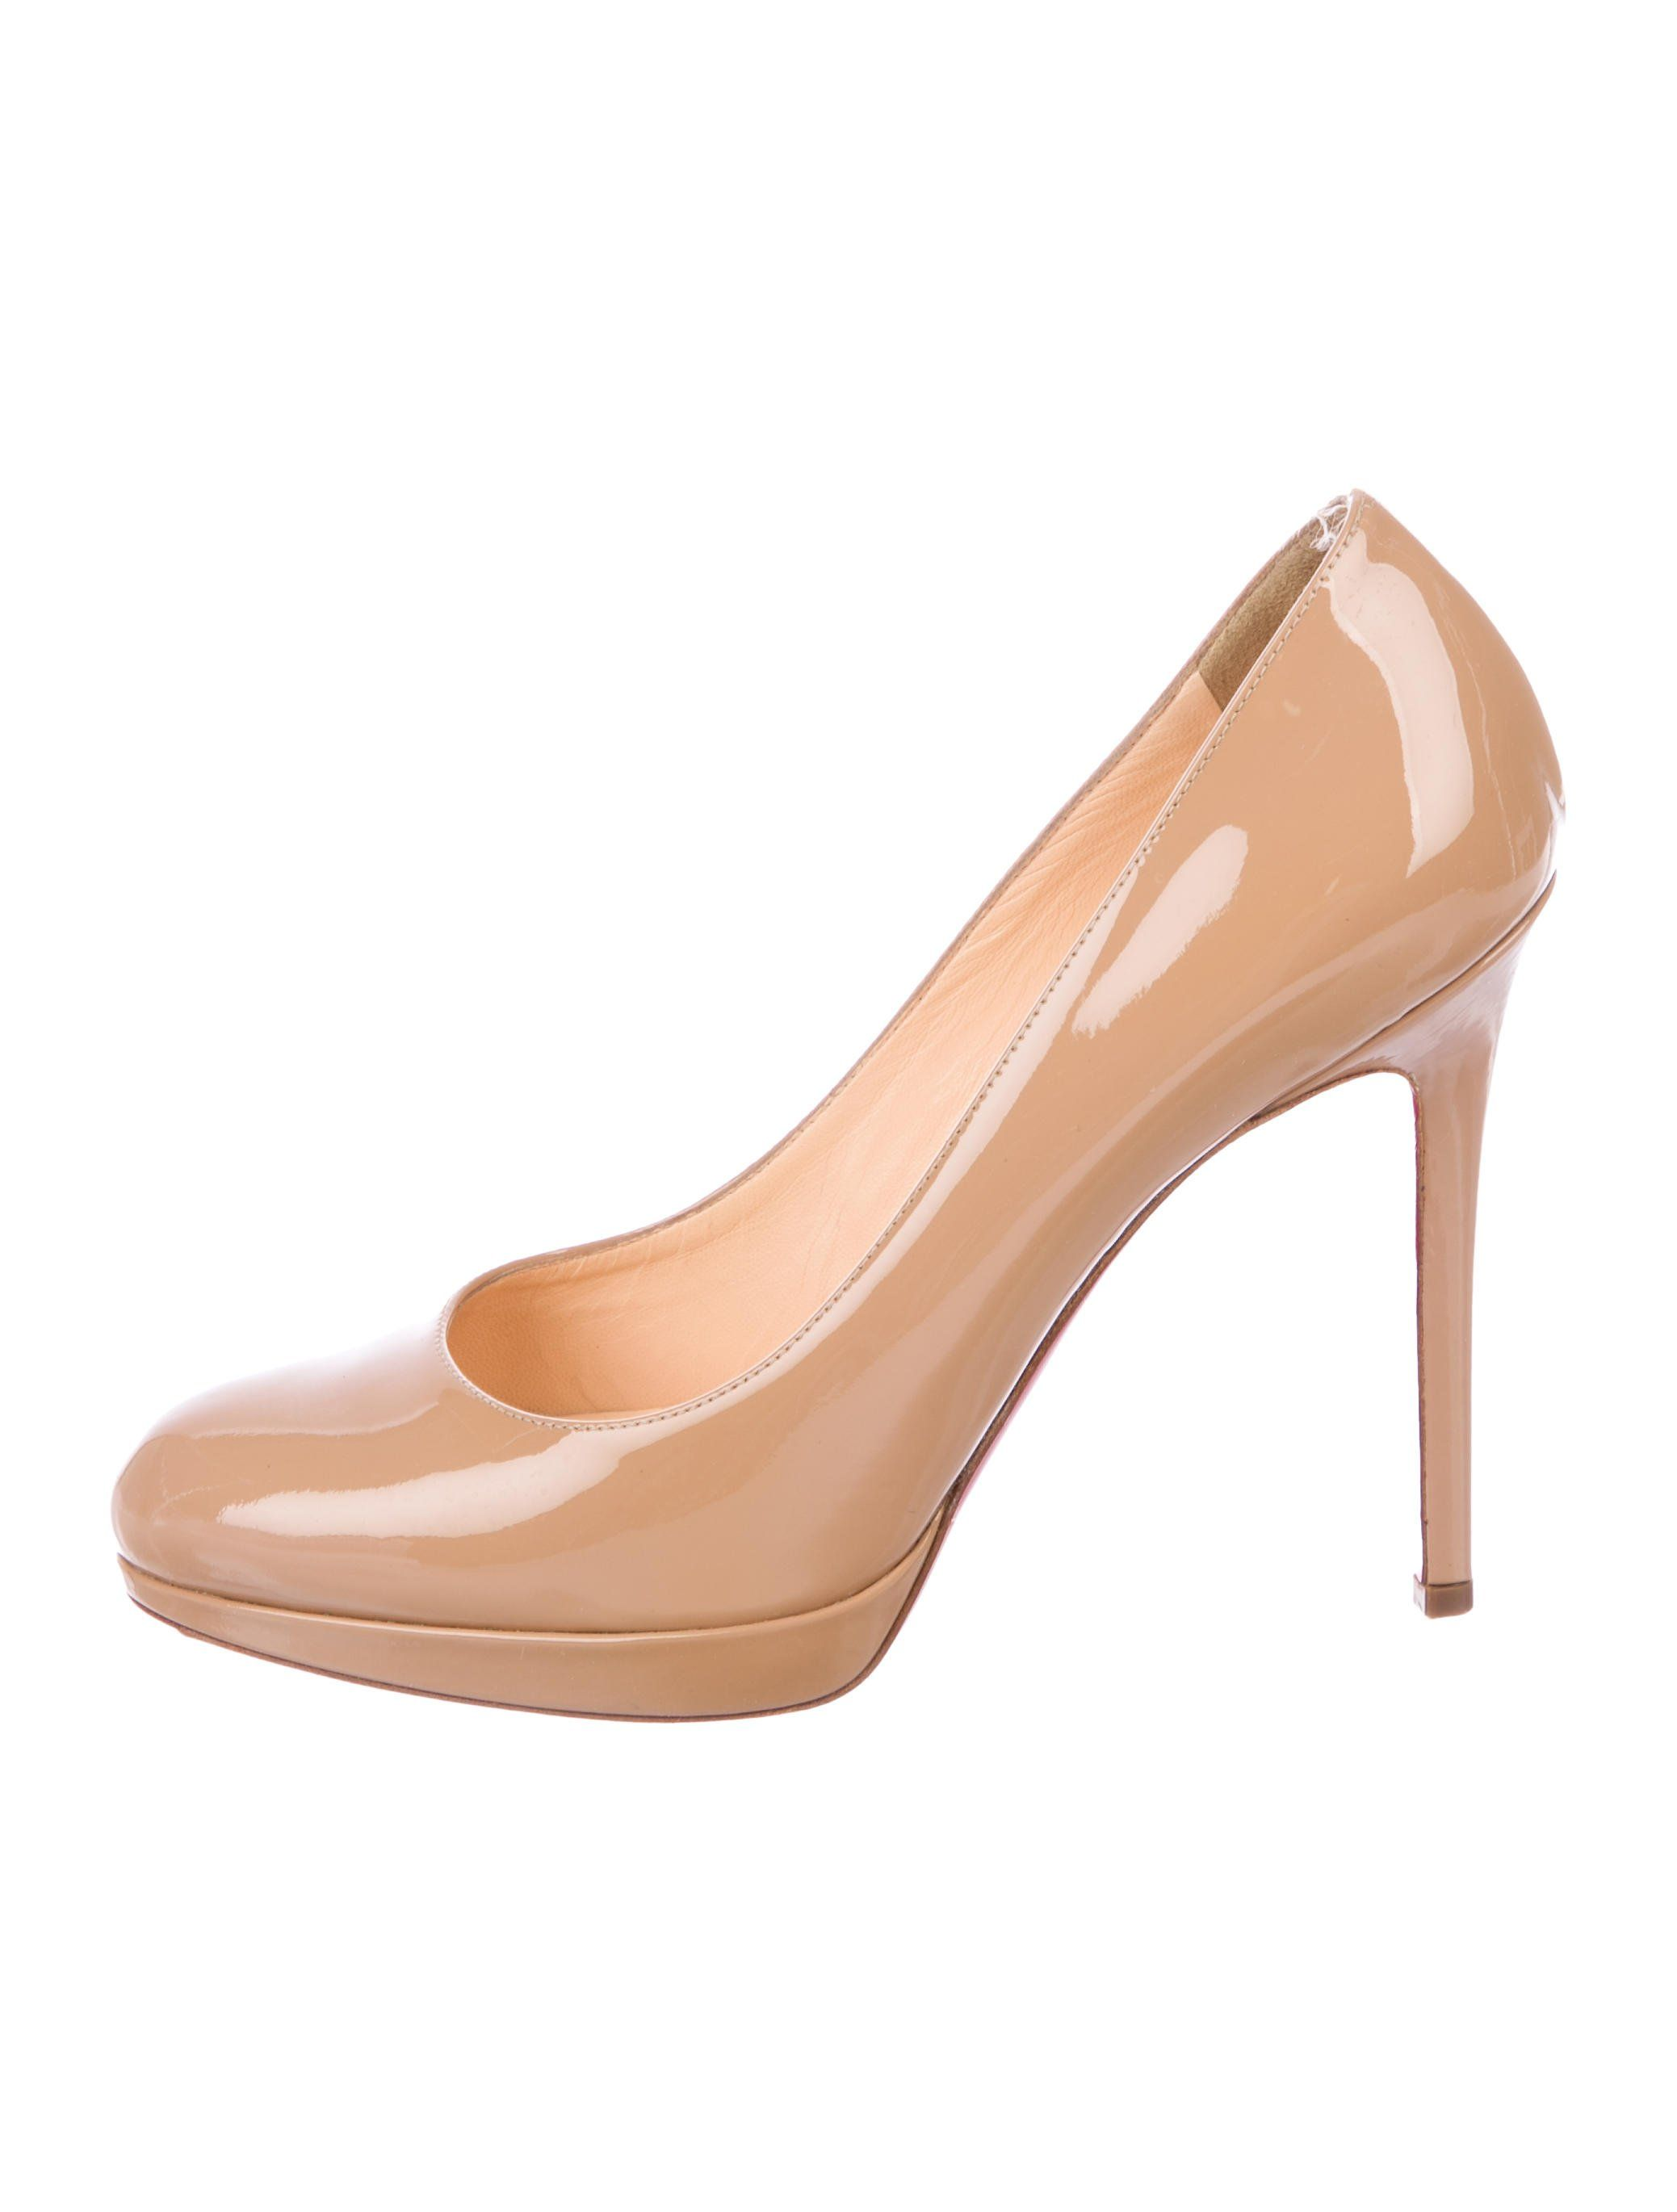 quality design d31e8 2e030 Tan patent leather Christian Louboutin round-toe pumps with ...